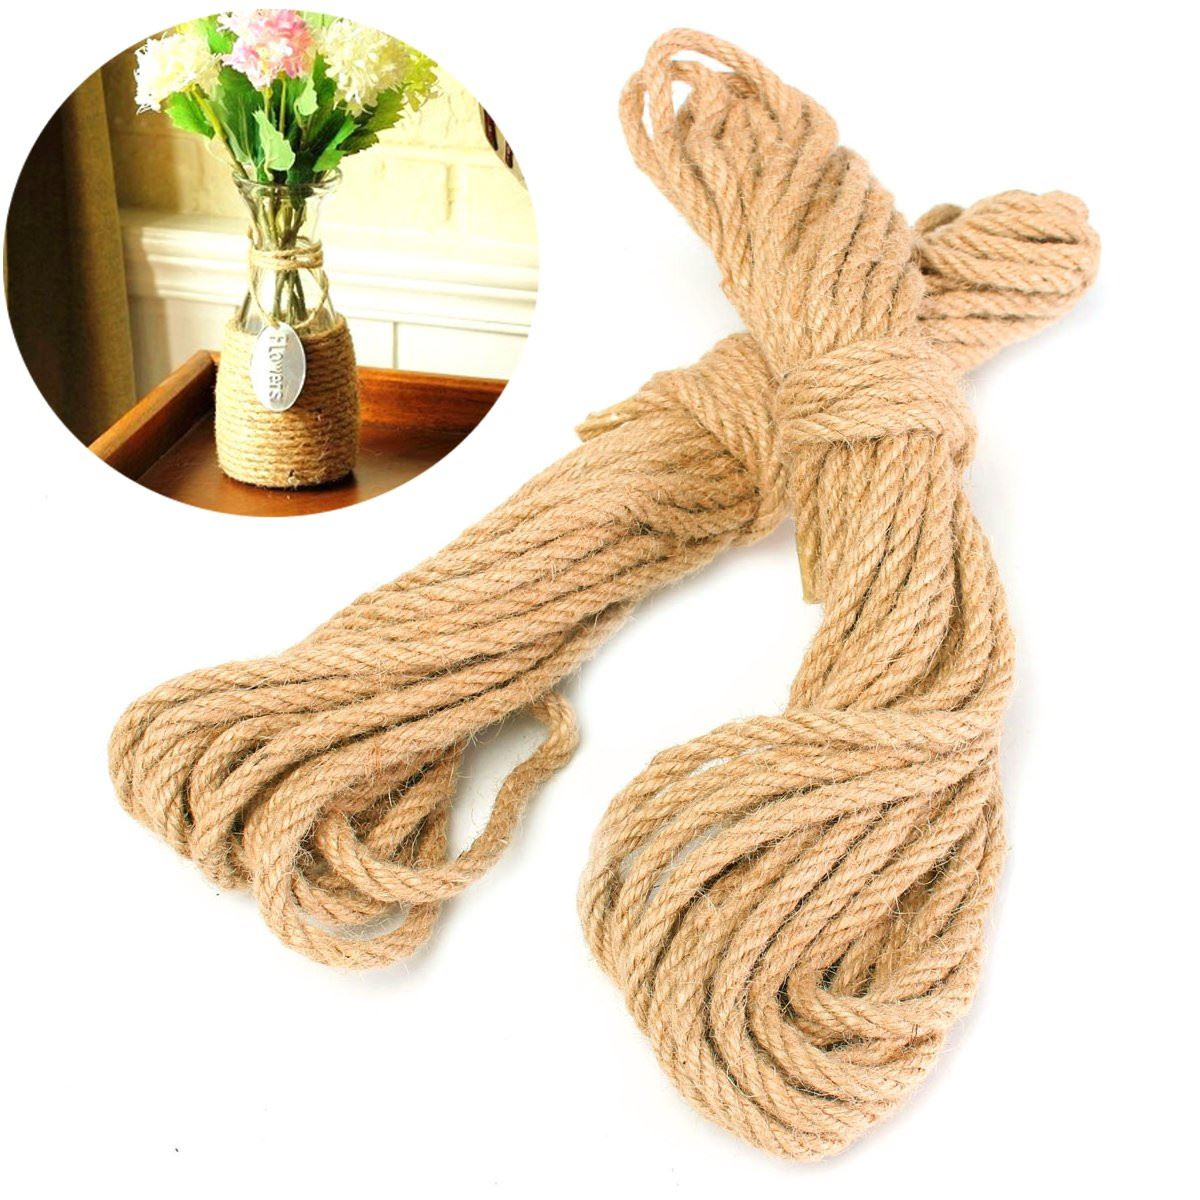 2x 10M Twisted Burlap Jute Twine Rope Thick Natural Hemp Cord Sisal Rope 6mm Craft Wedding Home House Tool Tools Part